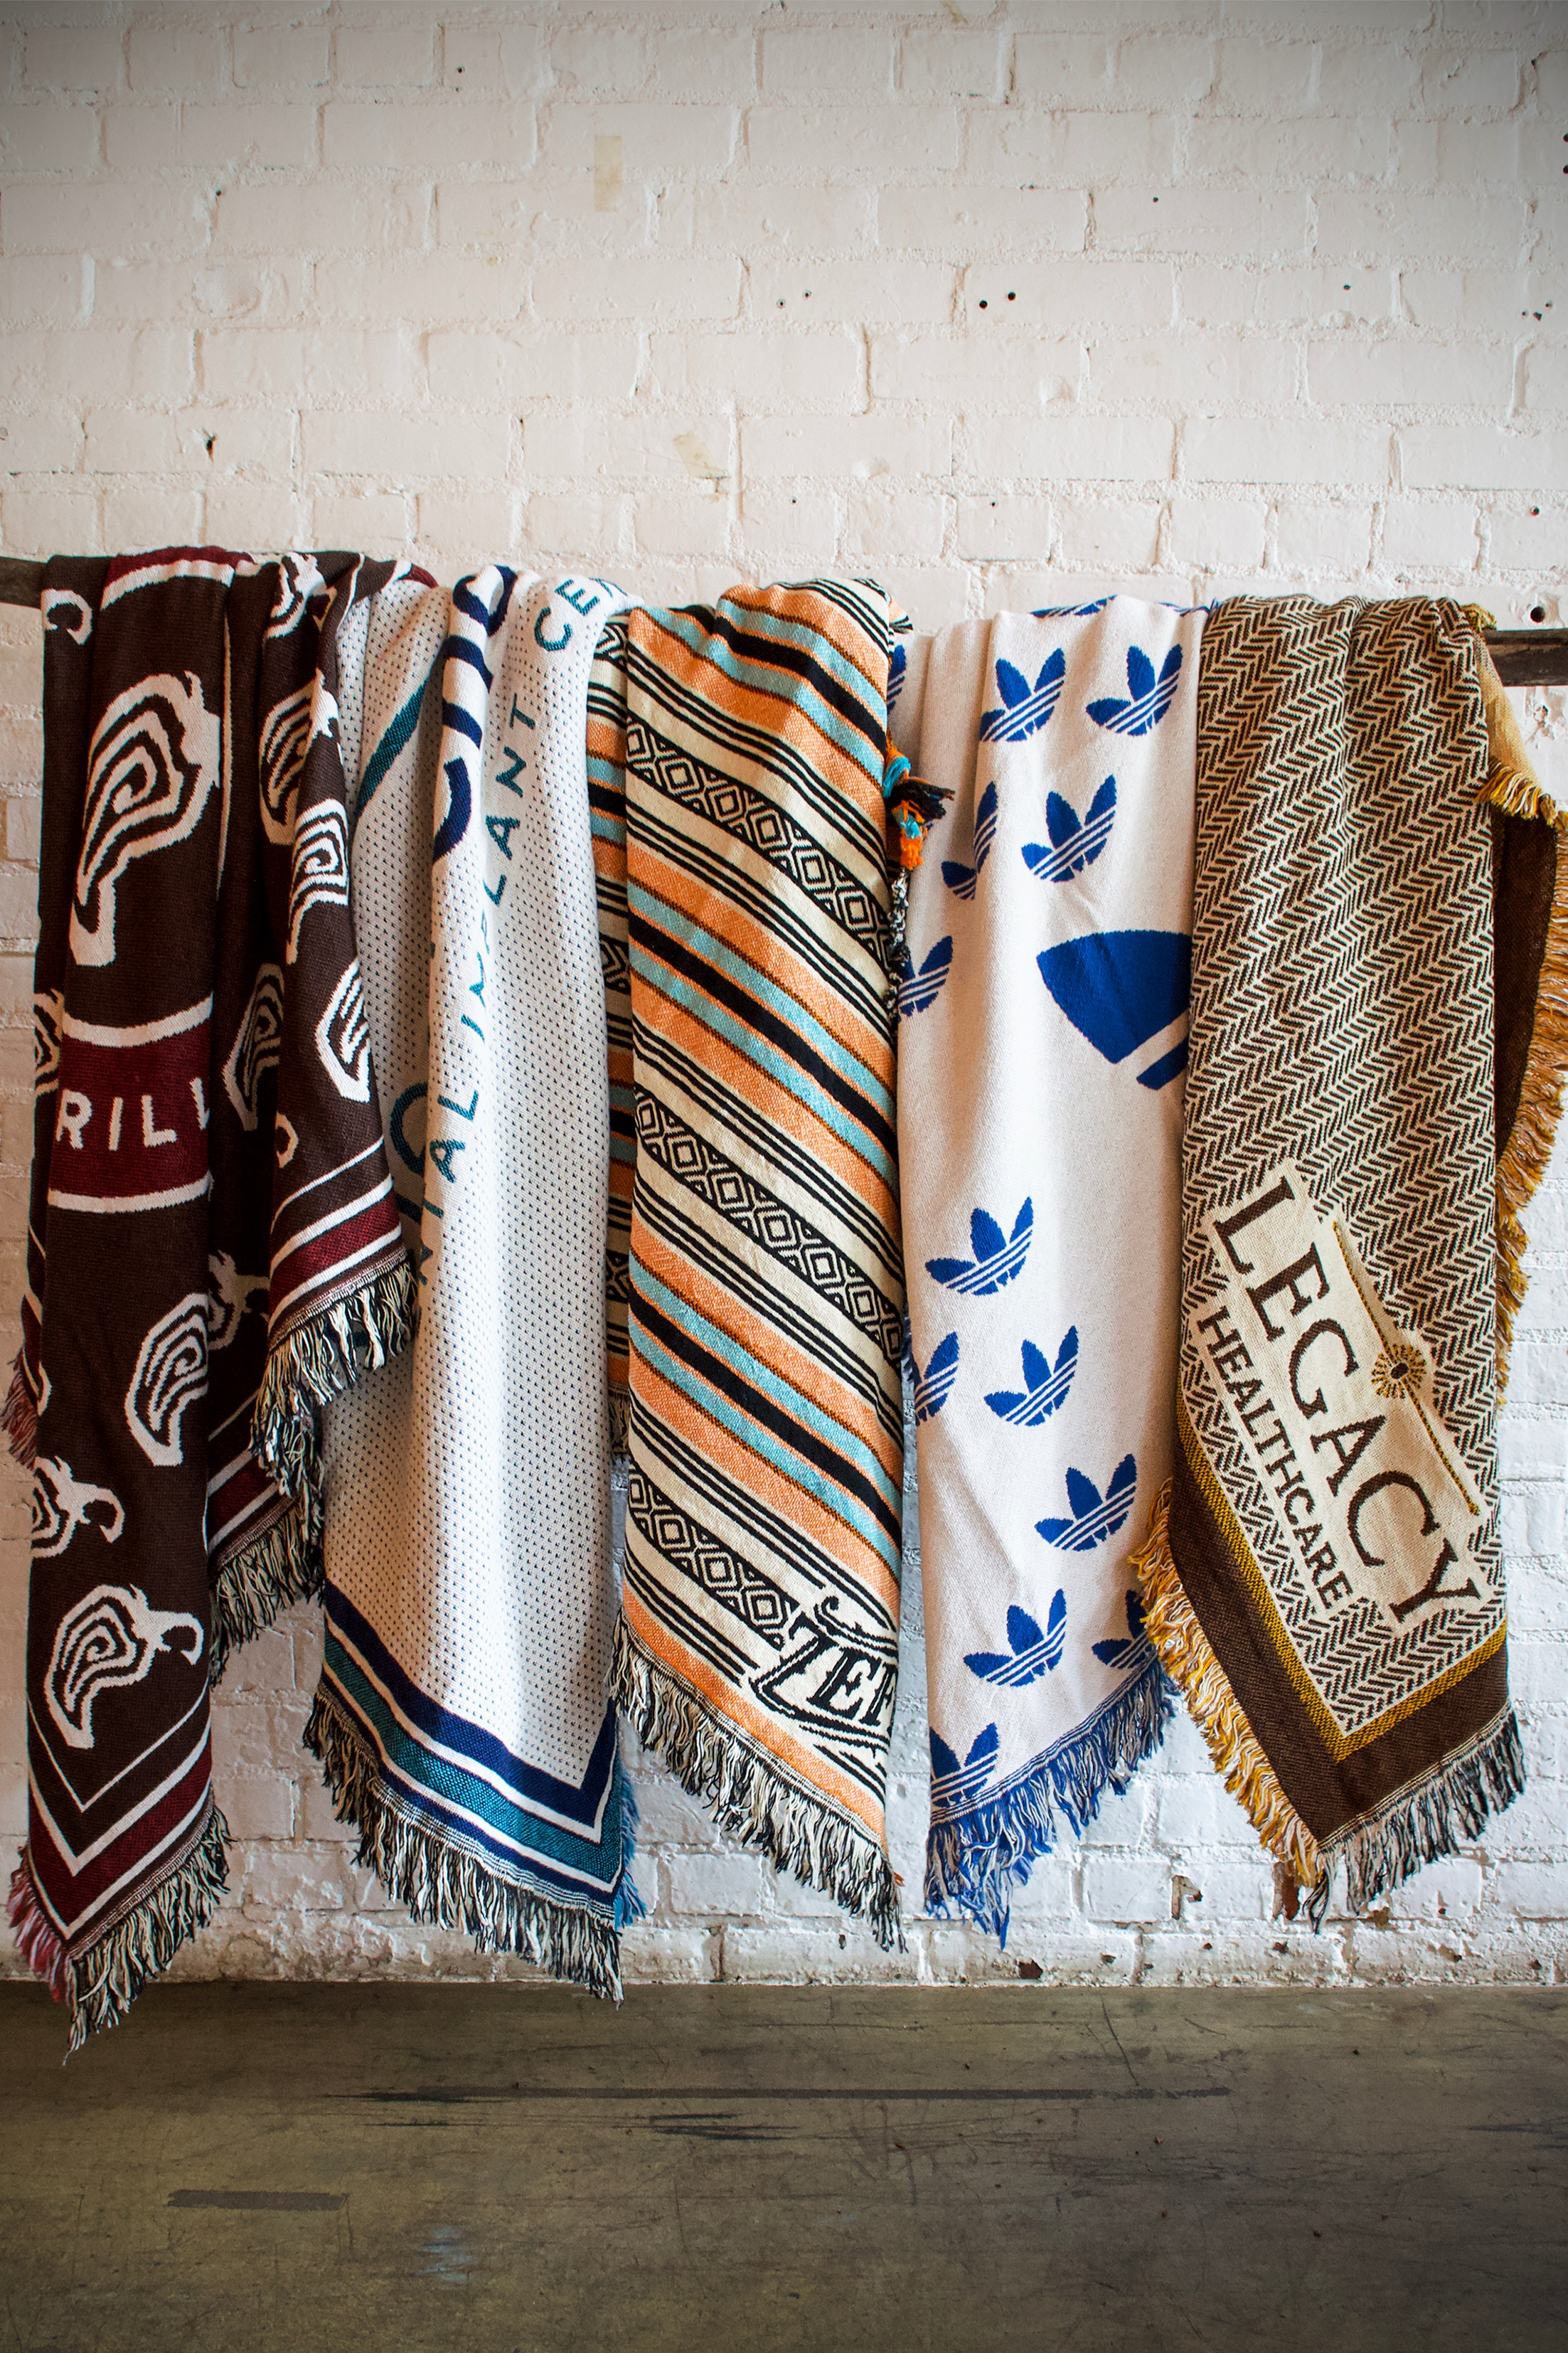 Throws - A timeless product paired with innovative design is perfect for events, client gifts, holiday gifts, promotional branding, retail and more. Our cotton woven throws beautifully capture simple logos or full color artwork. Available in various sizes and constructions to fit any budget.